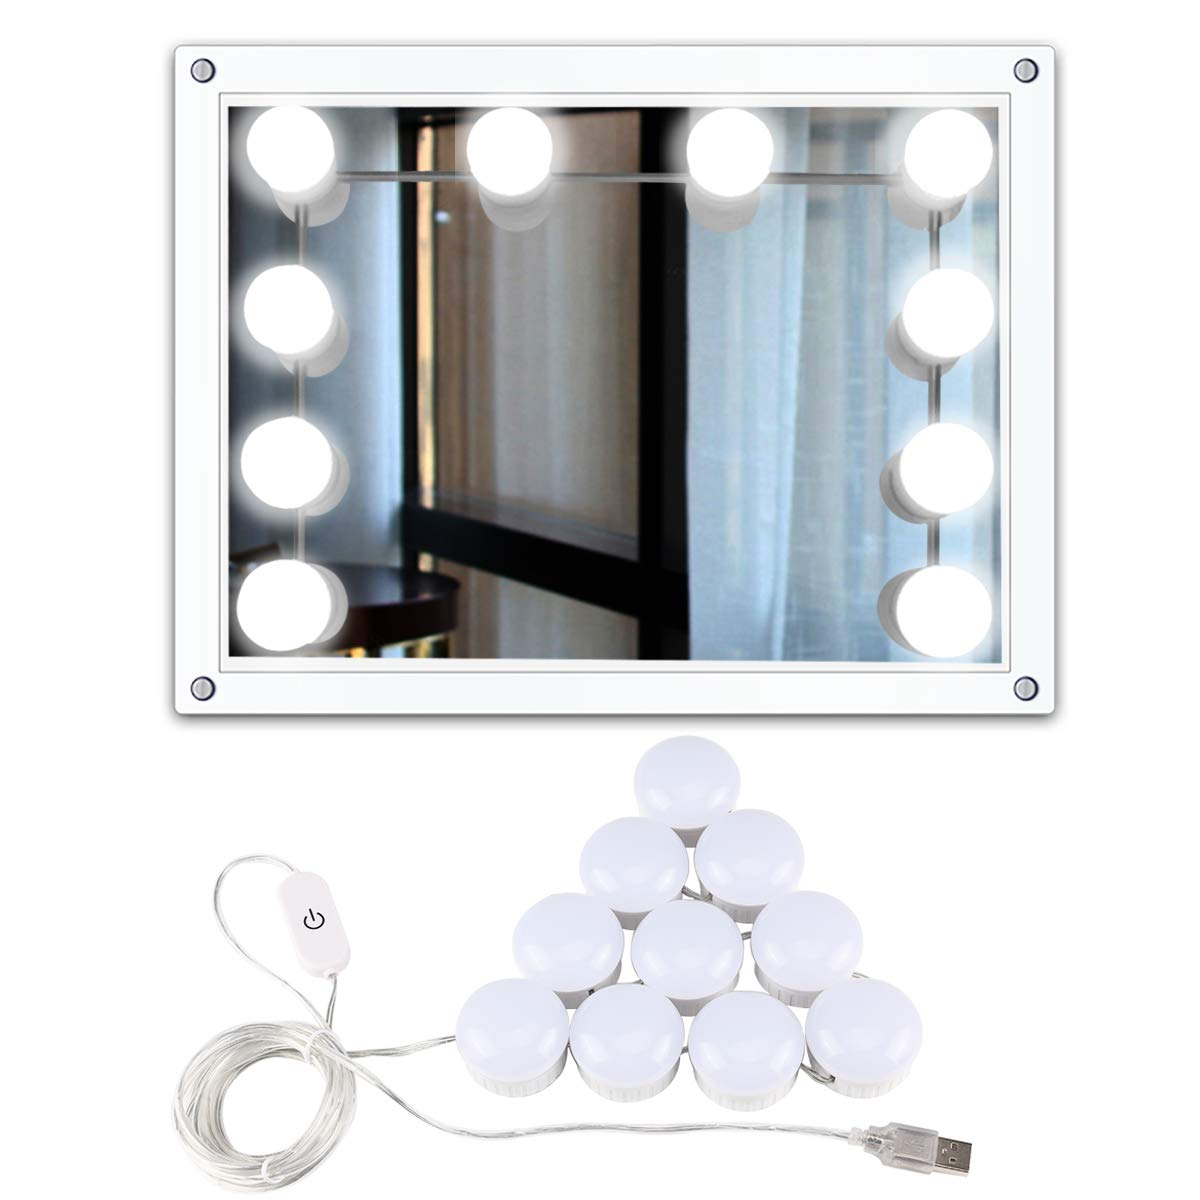 Hollywood Style LED Vanity Mirror Lights Kit,Makeup Light Kit with 10 Dimmable Light Bulbs for Makeup, Dressing, Decoration, USB Power Makeup Light(15.2Ft/4.8M)